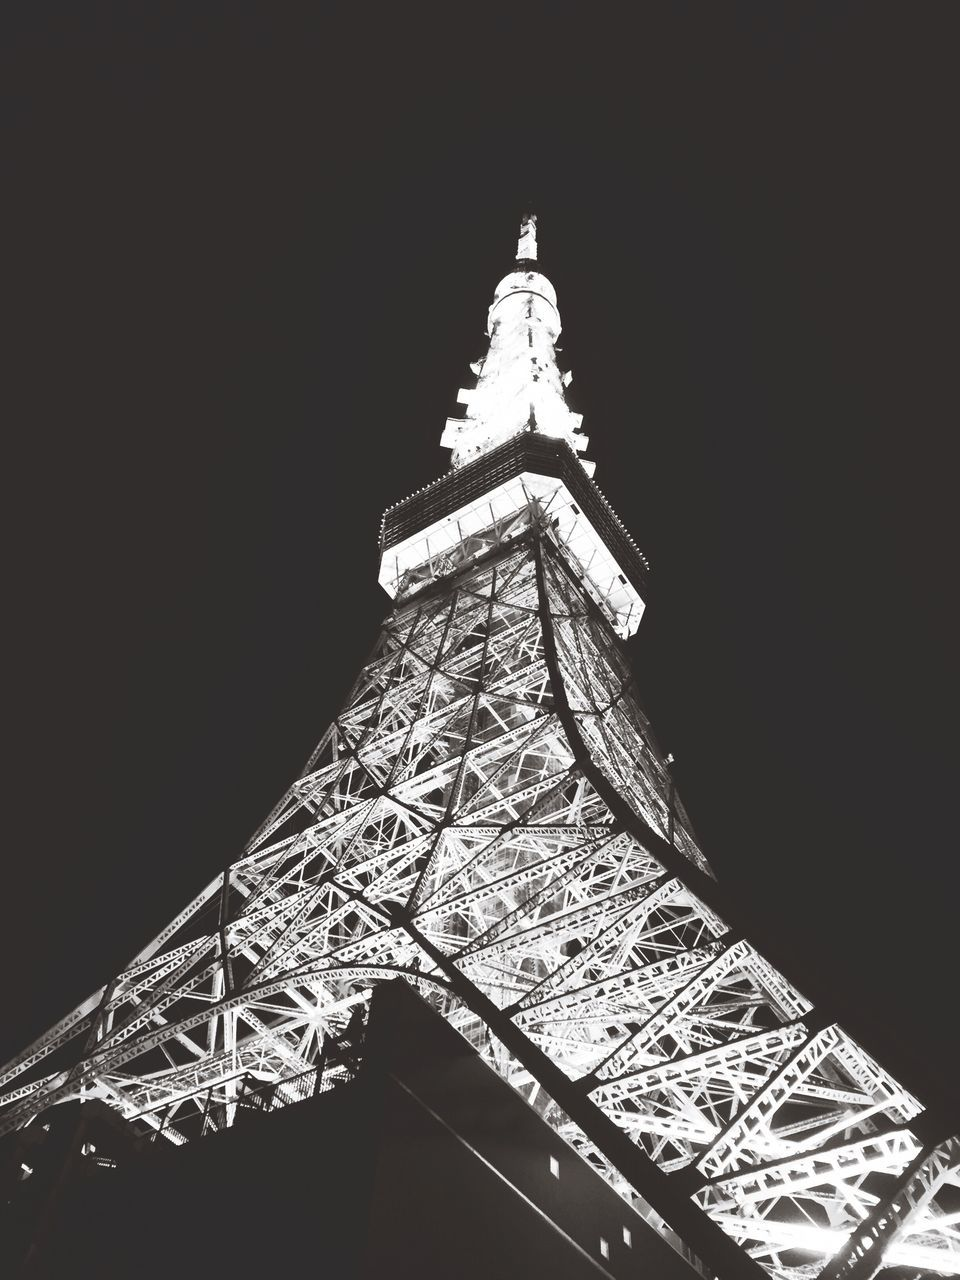 tower, low angle view, architecture, tall - high, built structure, night, illuminated, travel destinations, architectural feature, copy space, tourism, no people, clear sky, celebration, history, outdoors, building exterior, sky